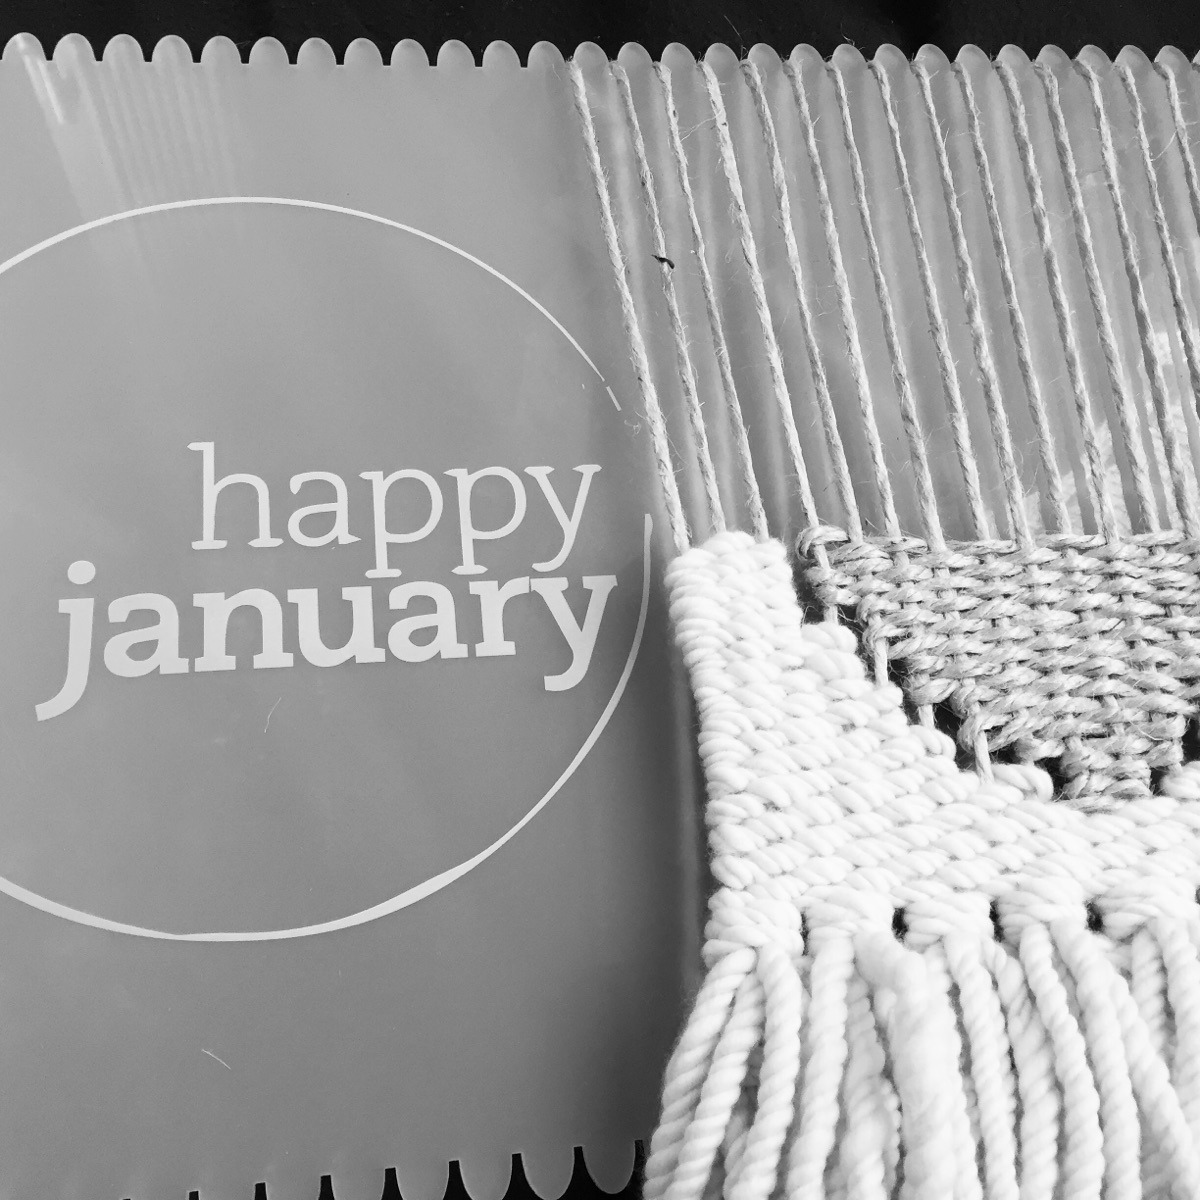 happy january (@happyjanuary) Cover Image